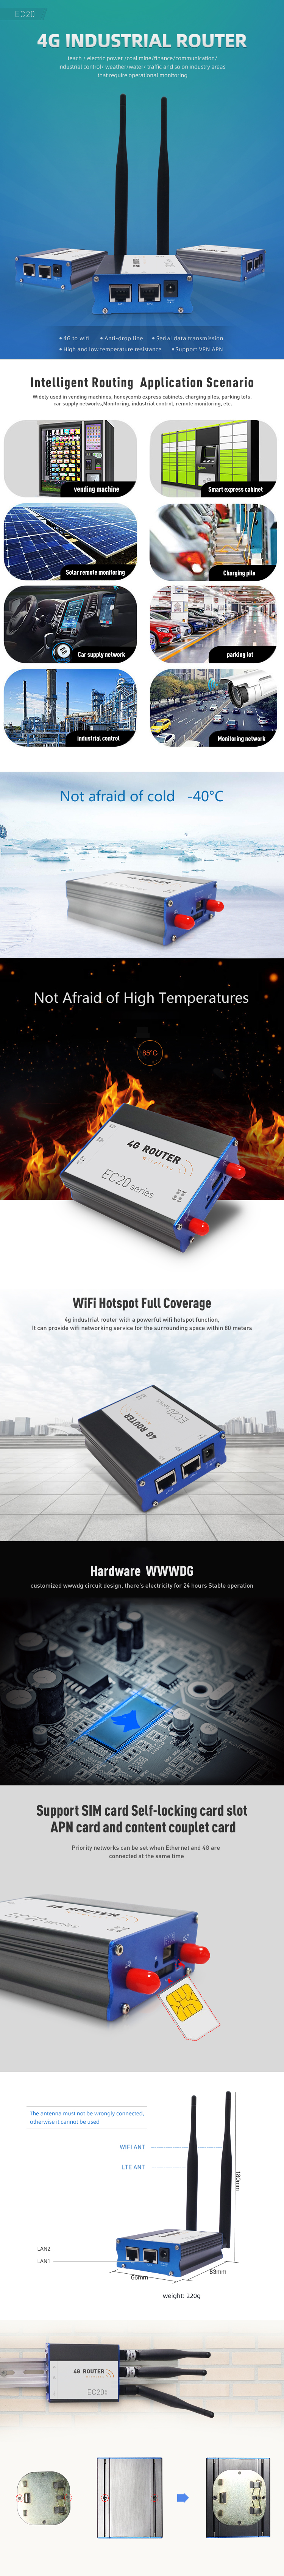 VPN APN supported one sim card slot wireless 2.4G wifi 4g industrial router